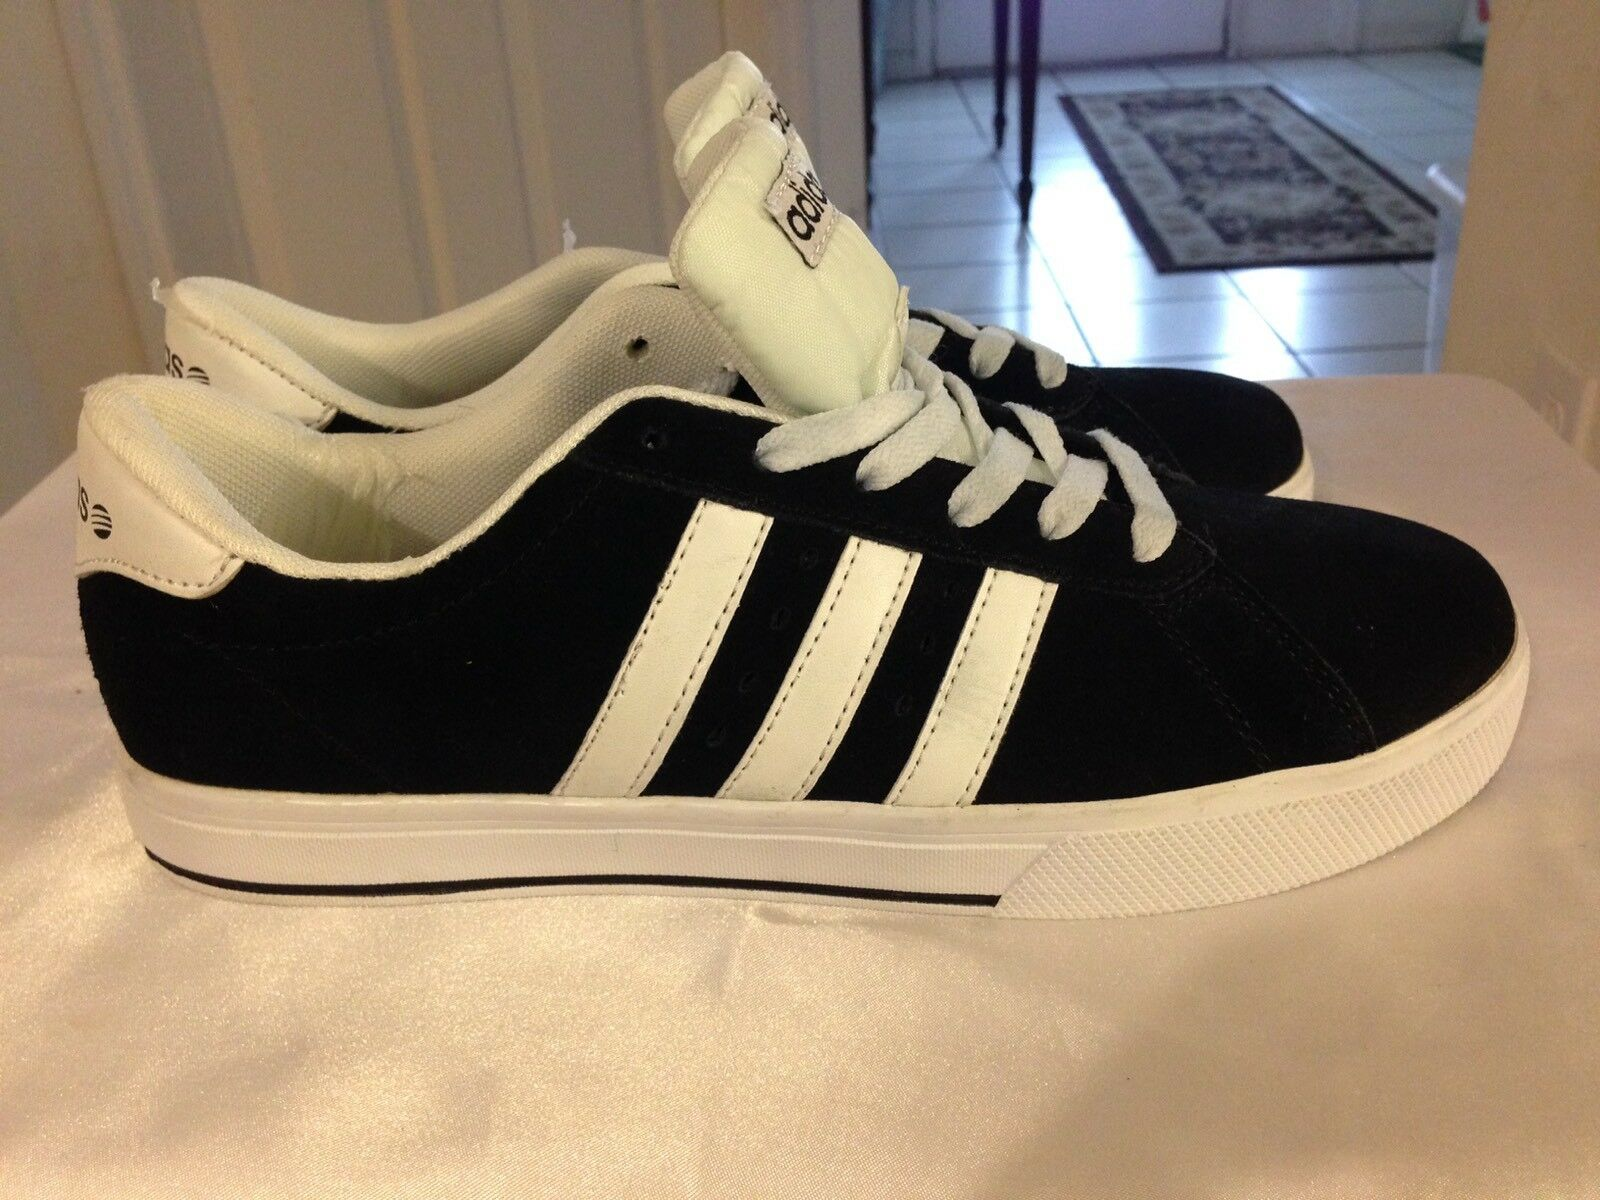 Adidas NEO Label Men's Black White Suede Ortholite 3 Striped Sneakers Size 8.5